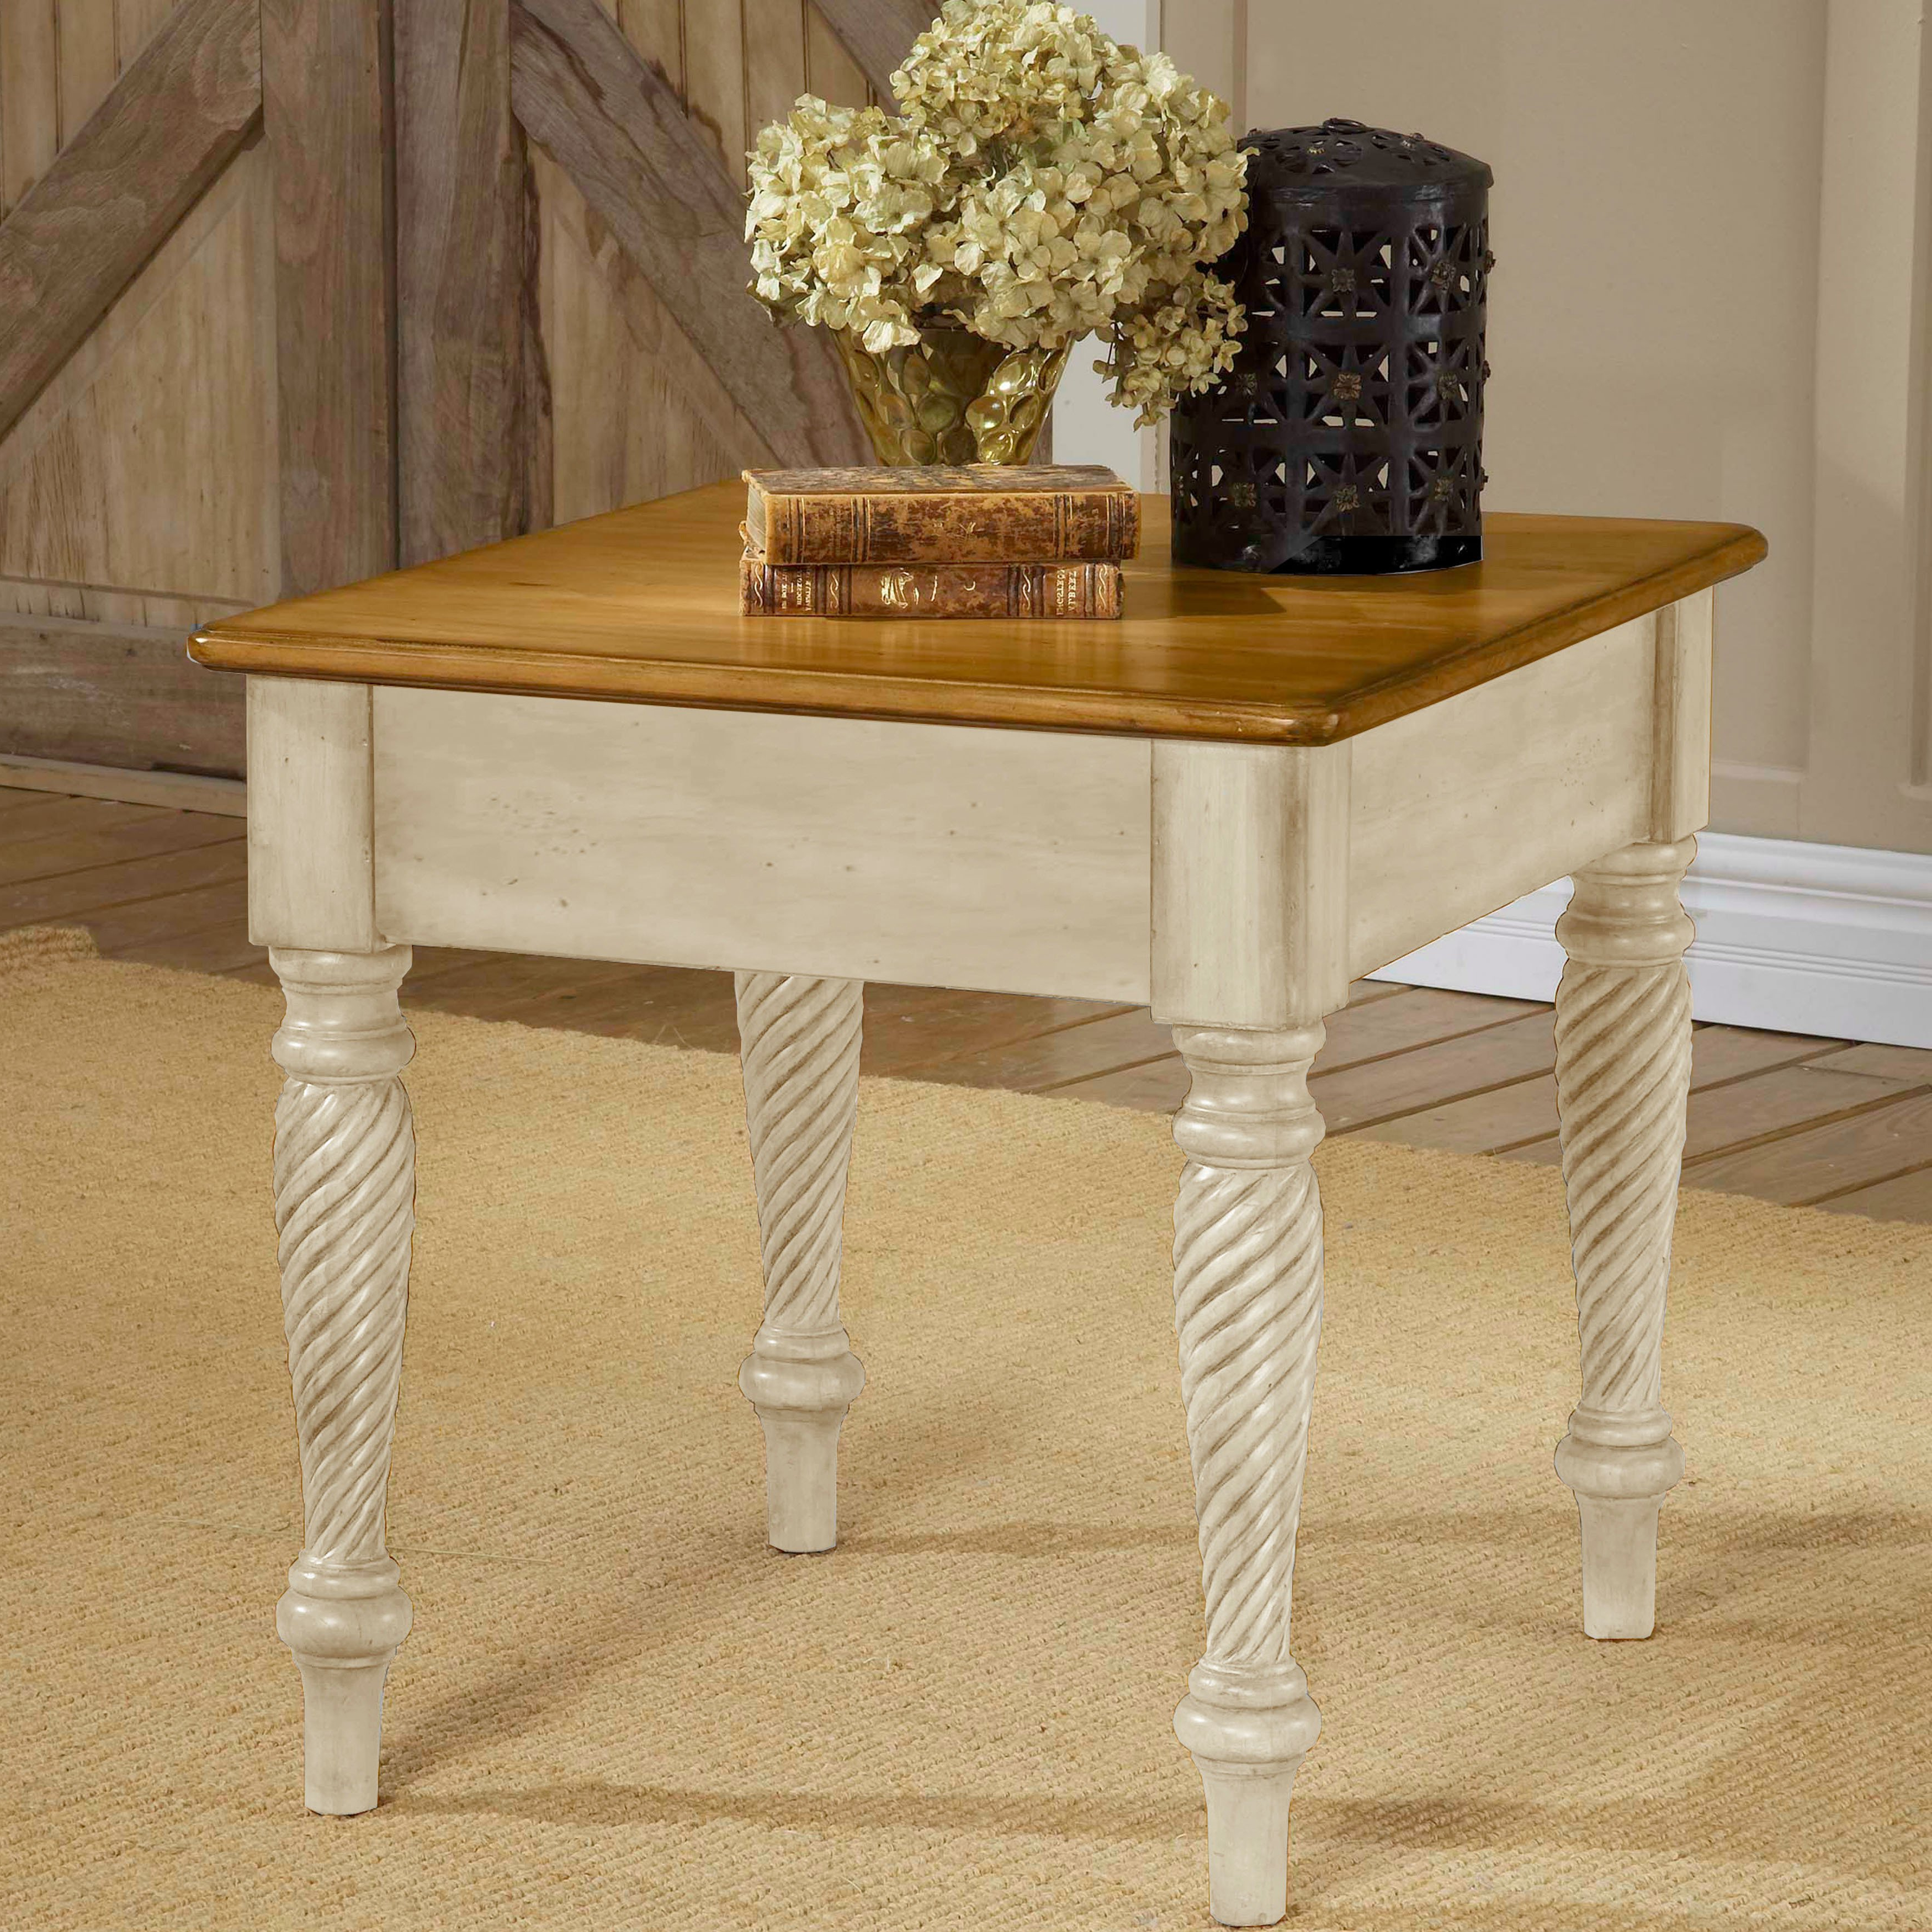 Latest Hillsdale Furniture Wilshire Antique White End Table – Free Shipping Pertaining To Wilshire Cocktail Tables (View 10 of 20)